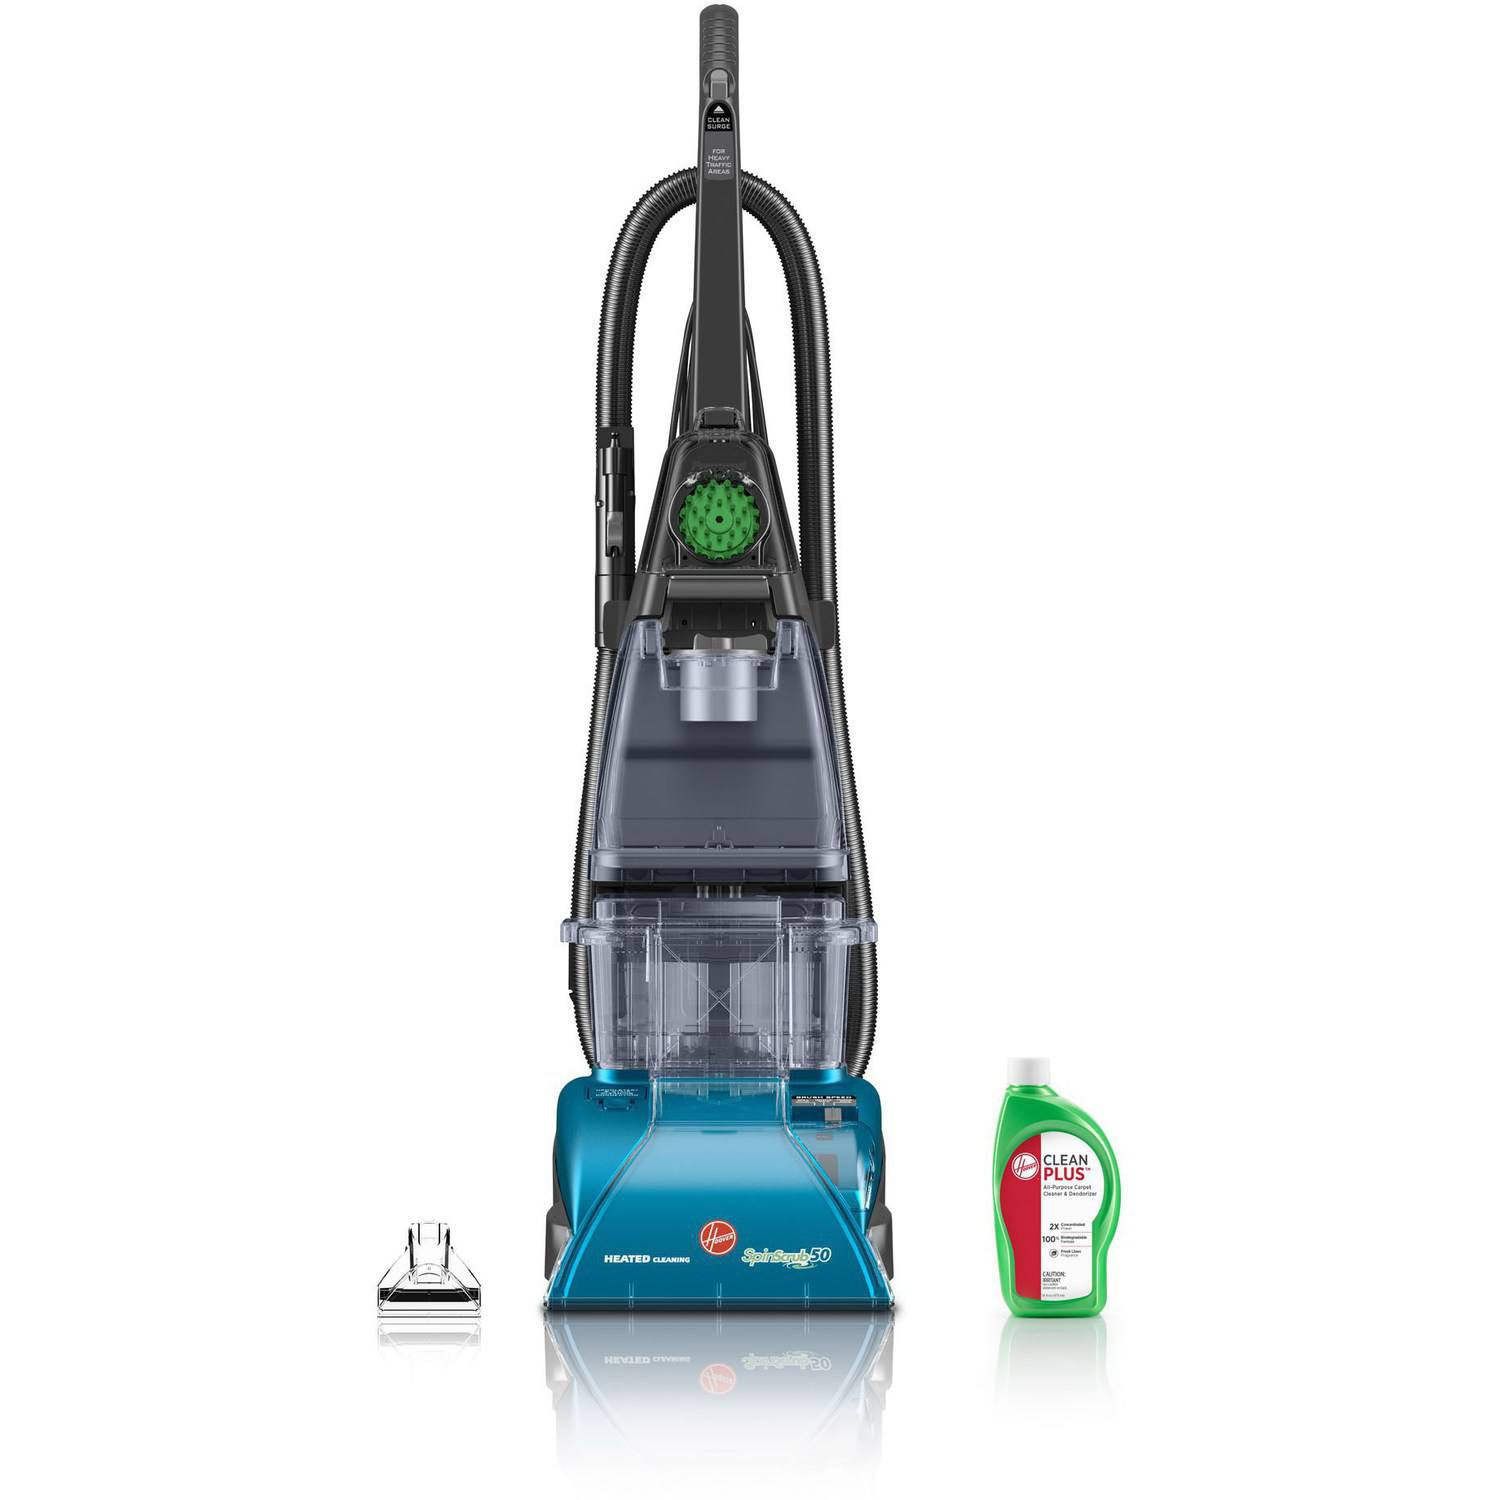 Carpet Cleaning Vacuum Bissell Proheat Pet Advanced Full Size Carpet Cleaner 1799